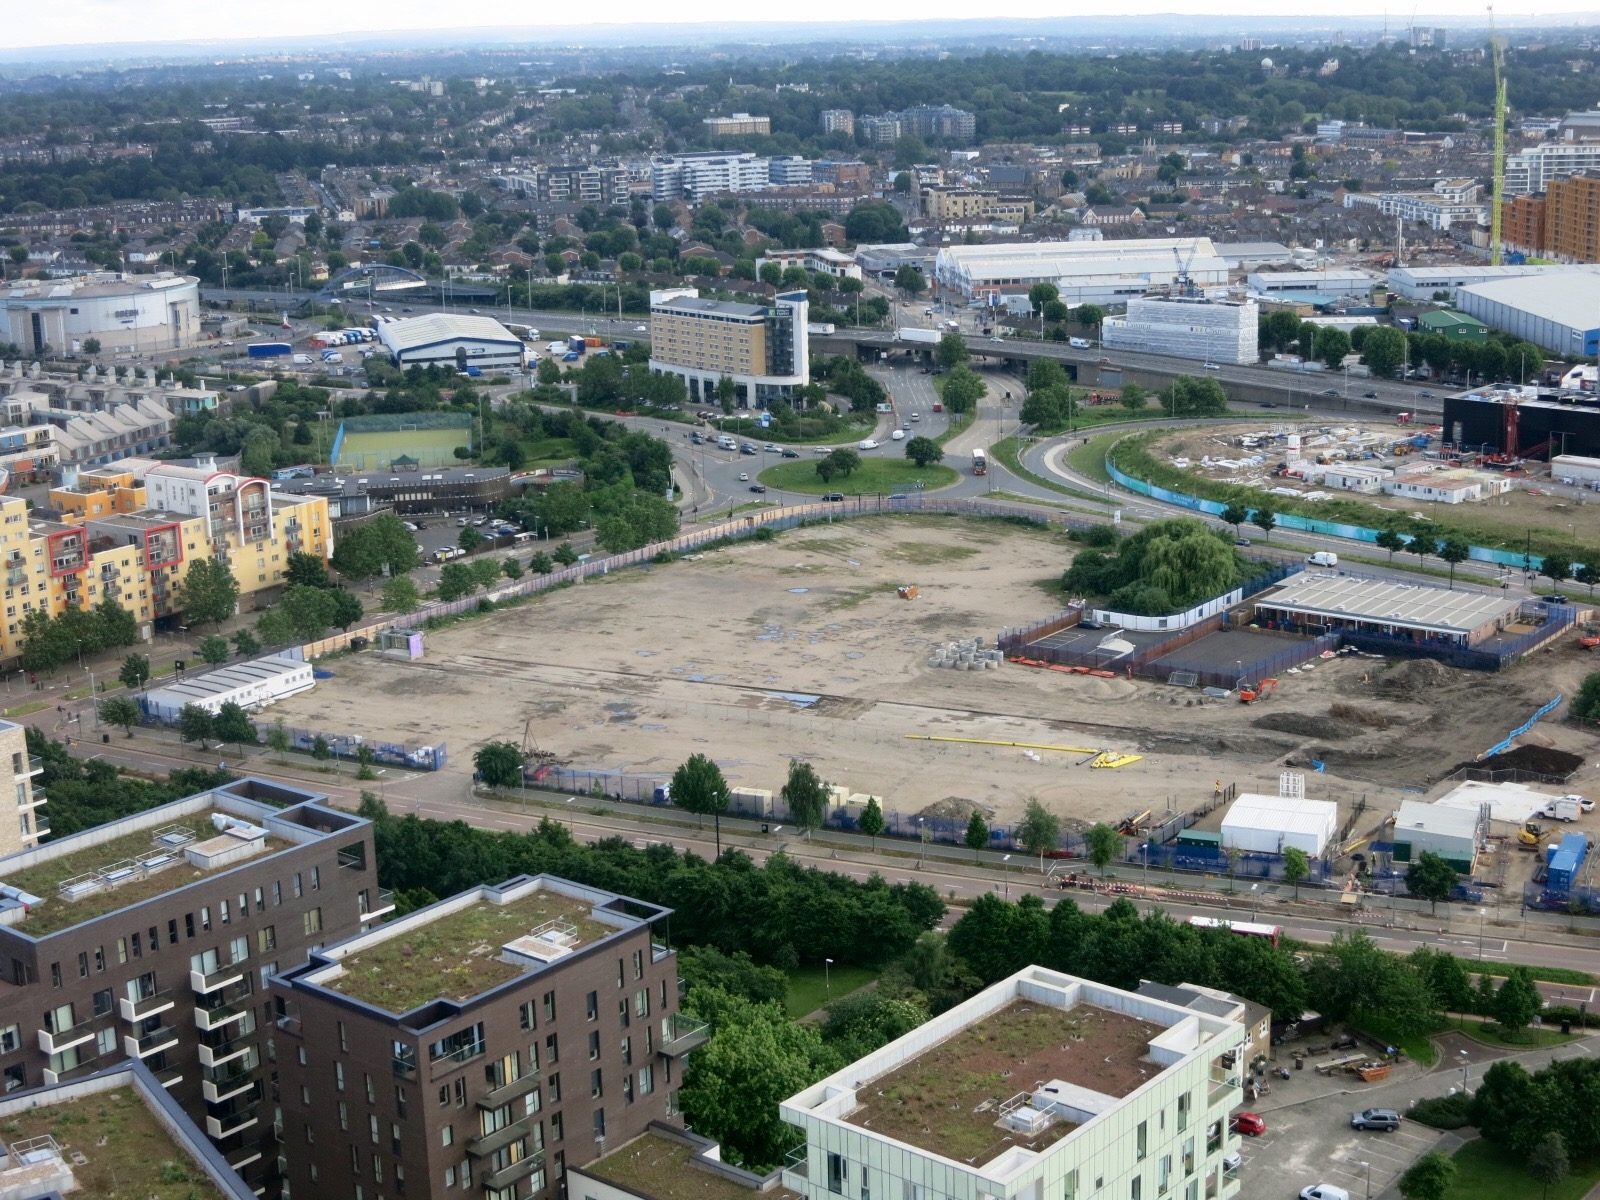 Cleared Lower Brickfields site, which is to house St Mary Magdalene Church of England School and 2 new residential plots